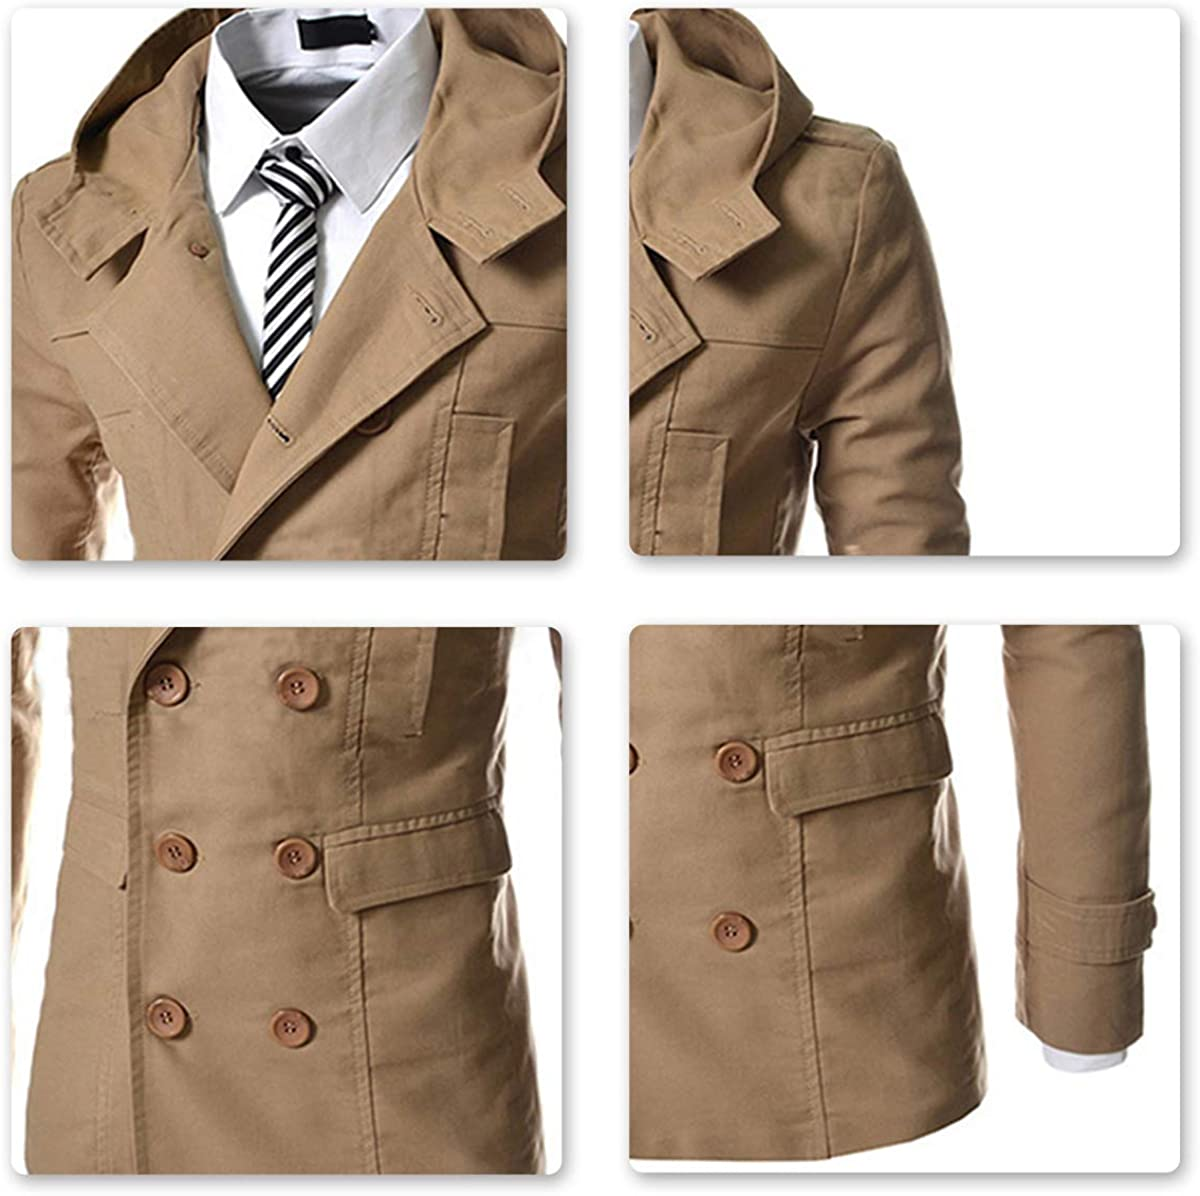 AOWOFS Mens Coat Hooded Trenchcoat Short Regular Fit Jacket Pea Coat Double Breasted Overcoat